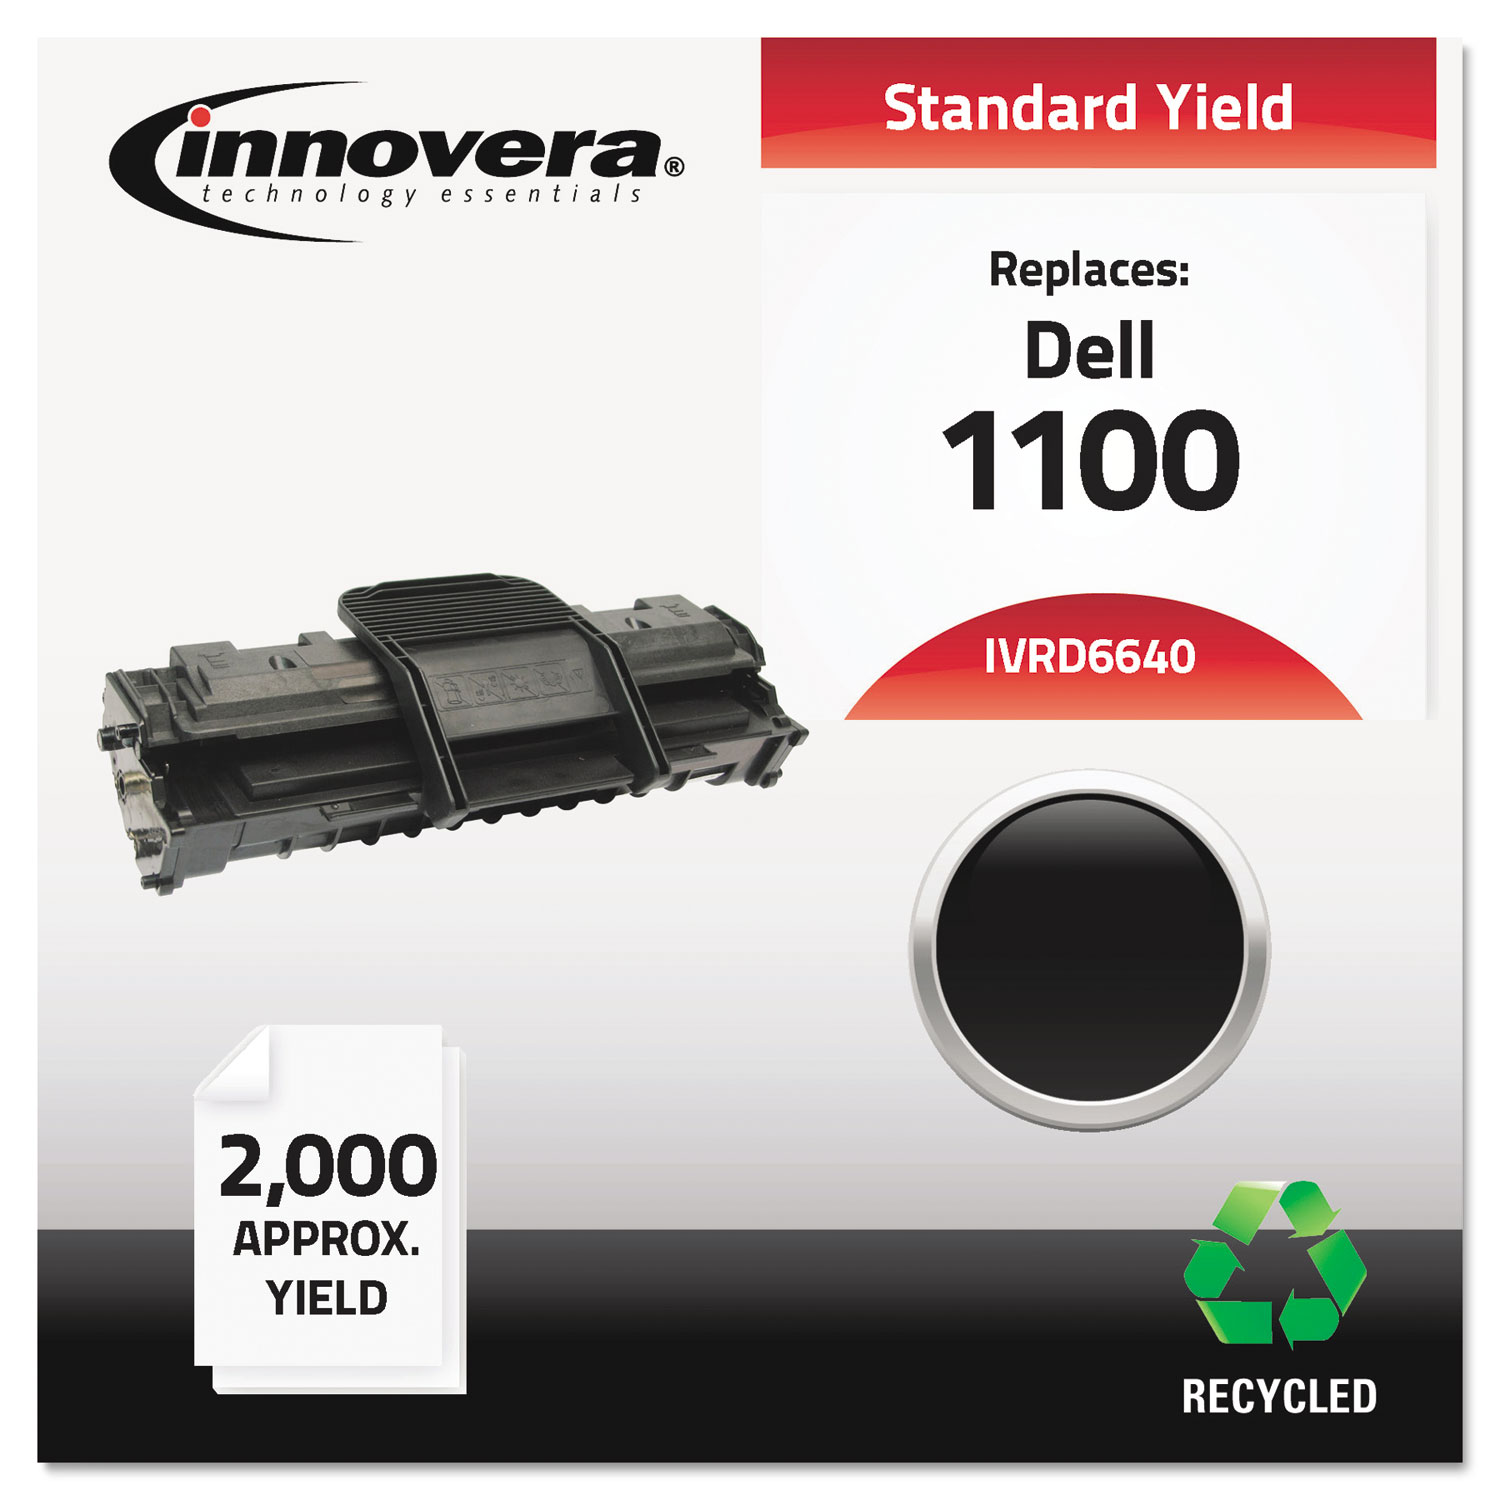 Remanufactured 310-6640 (1100) Toner, 2000 Page-Yield, Black